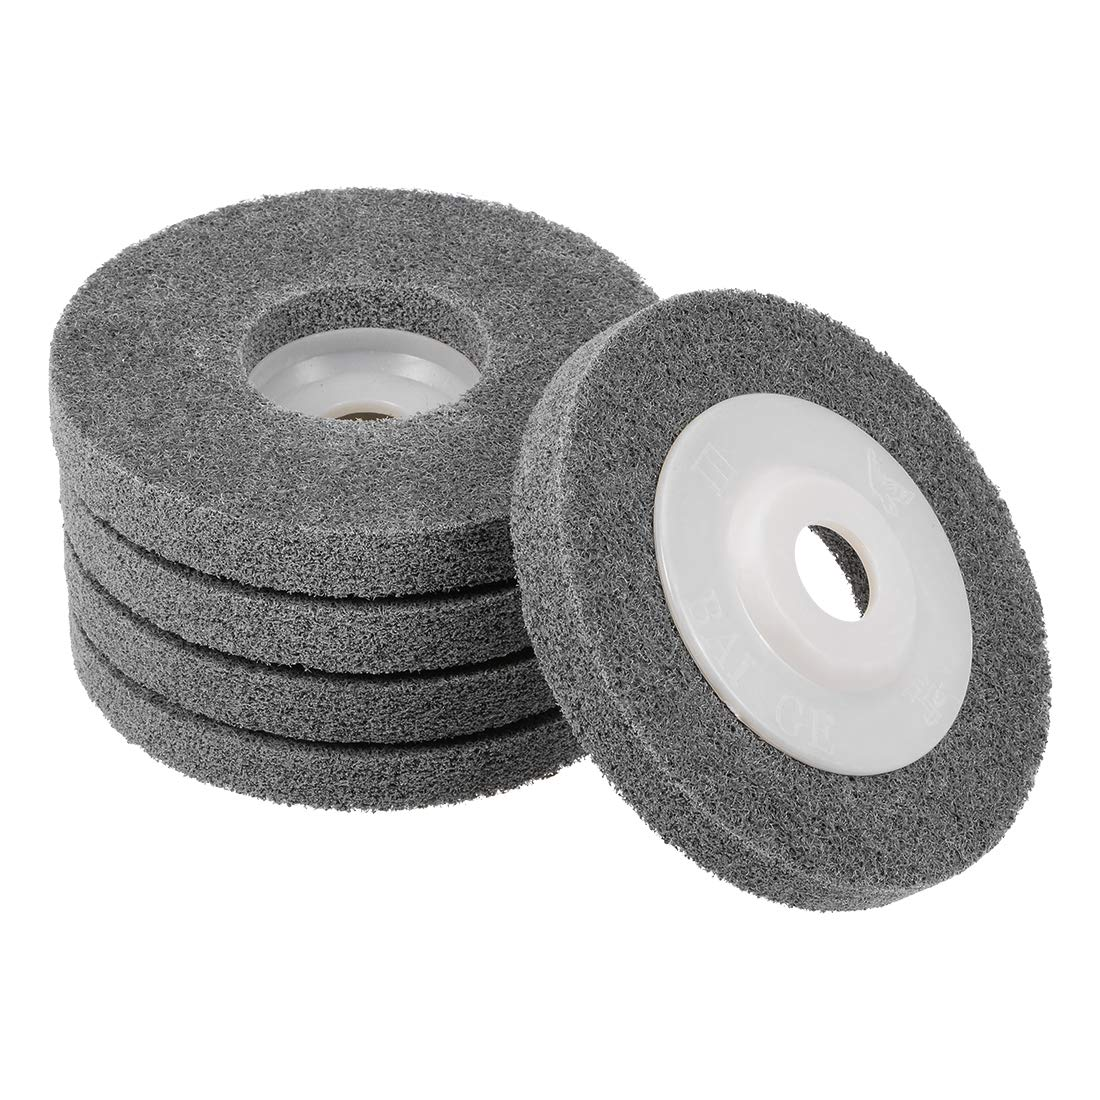 uxcell 4 Inch Nylon Fiber Polishing Wheel Sanding Buffing Disc Abrasive Wheels for Angle Grinders 5 Pcs